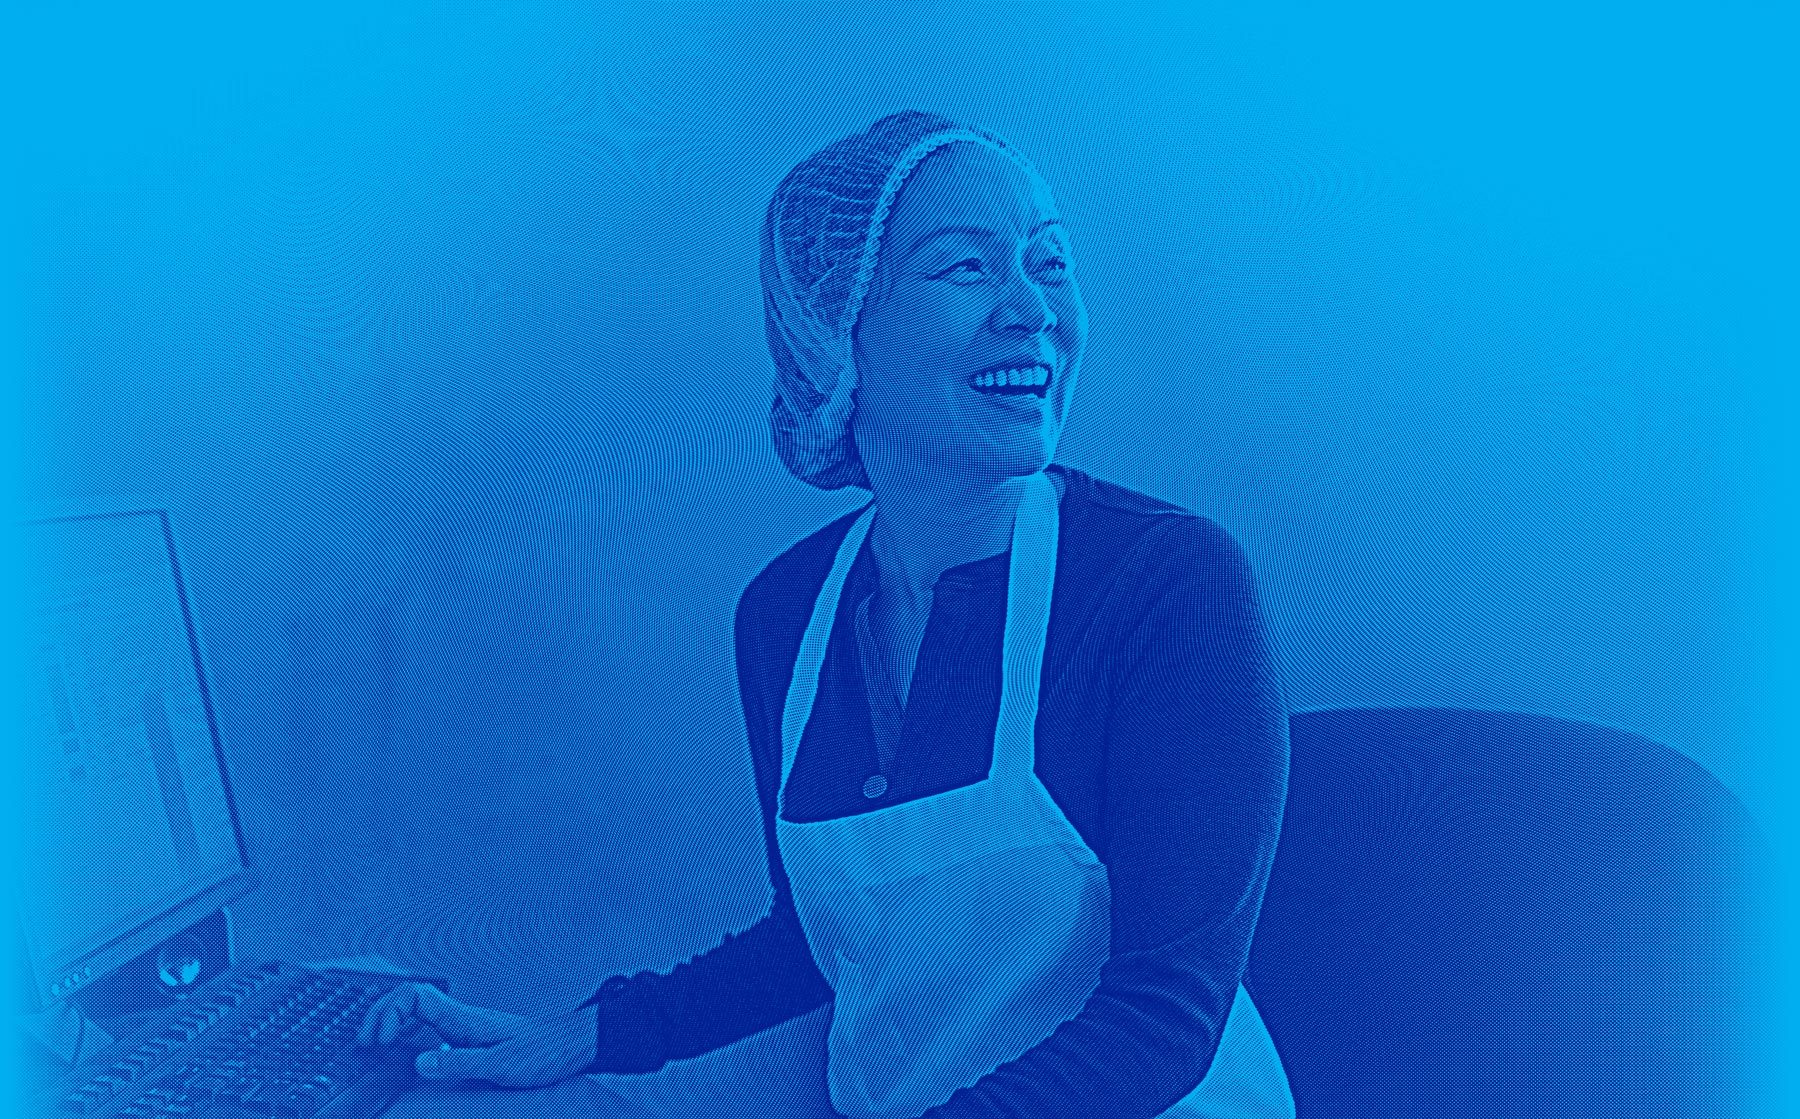 Food processing industry employee smiling as she enters order into a computer